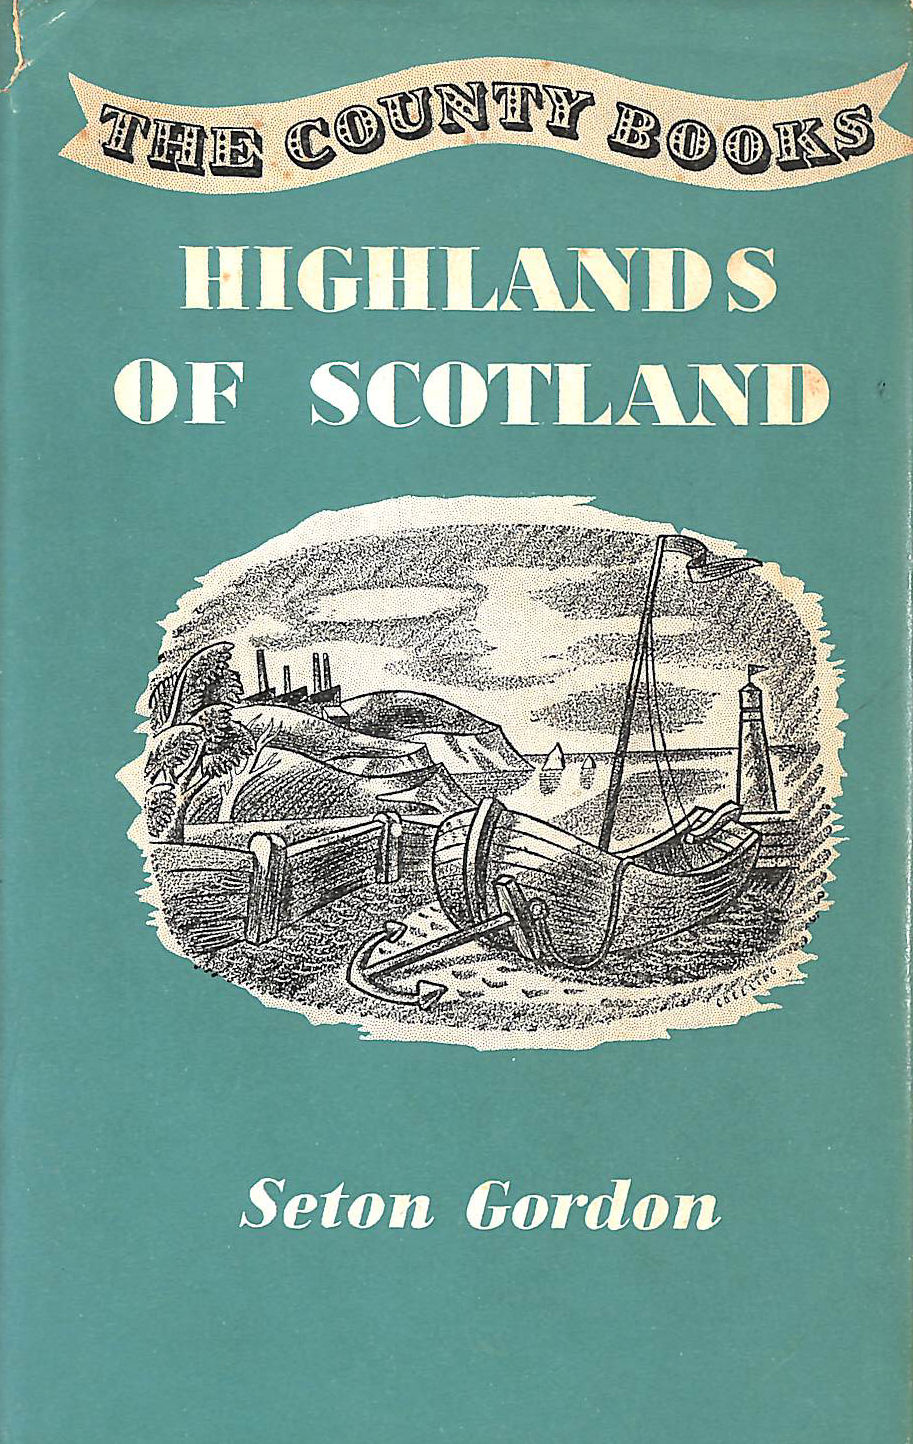 Image for Highlands of Scotland (County Books series)